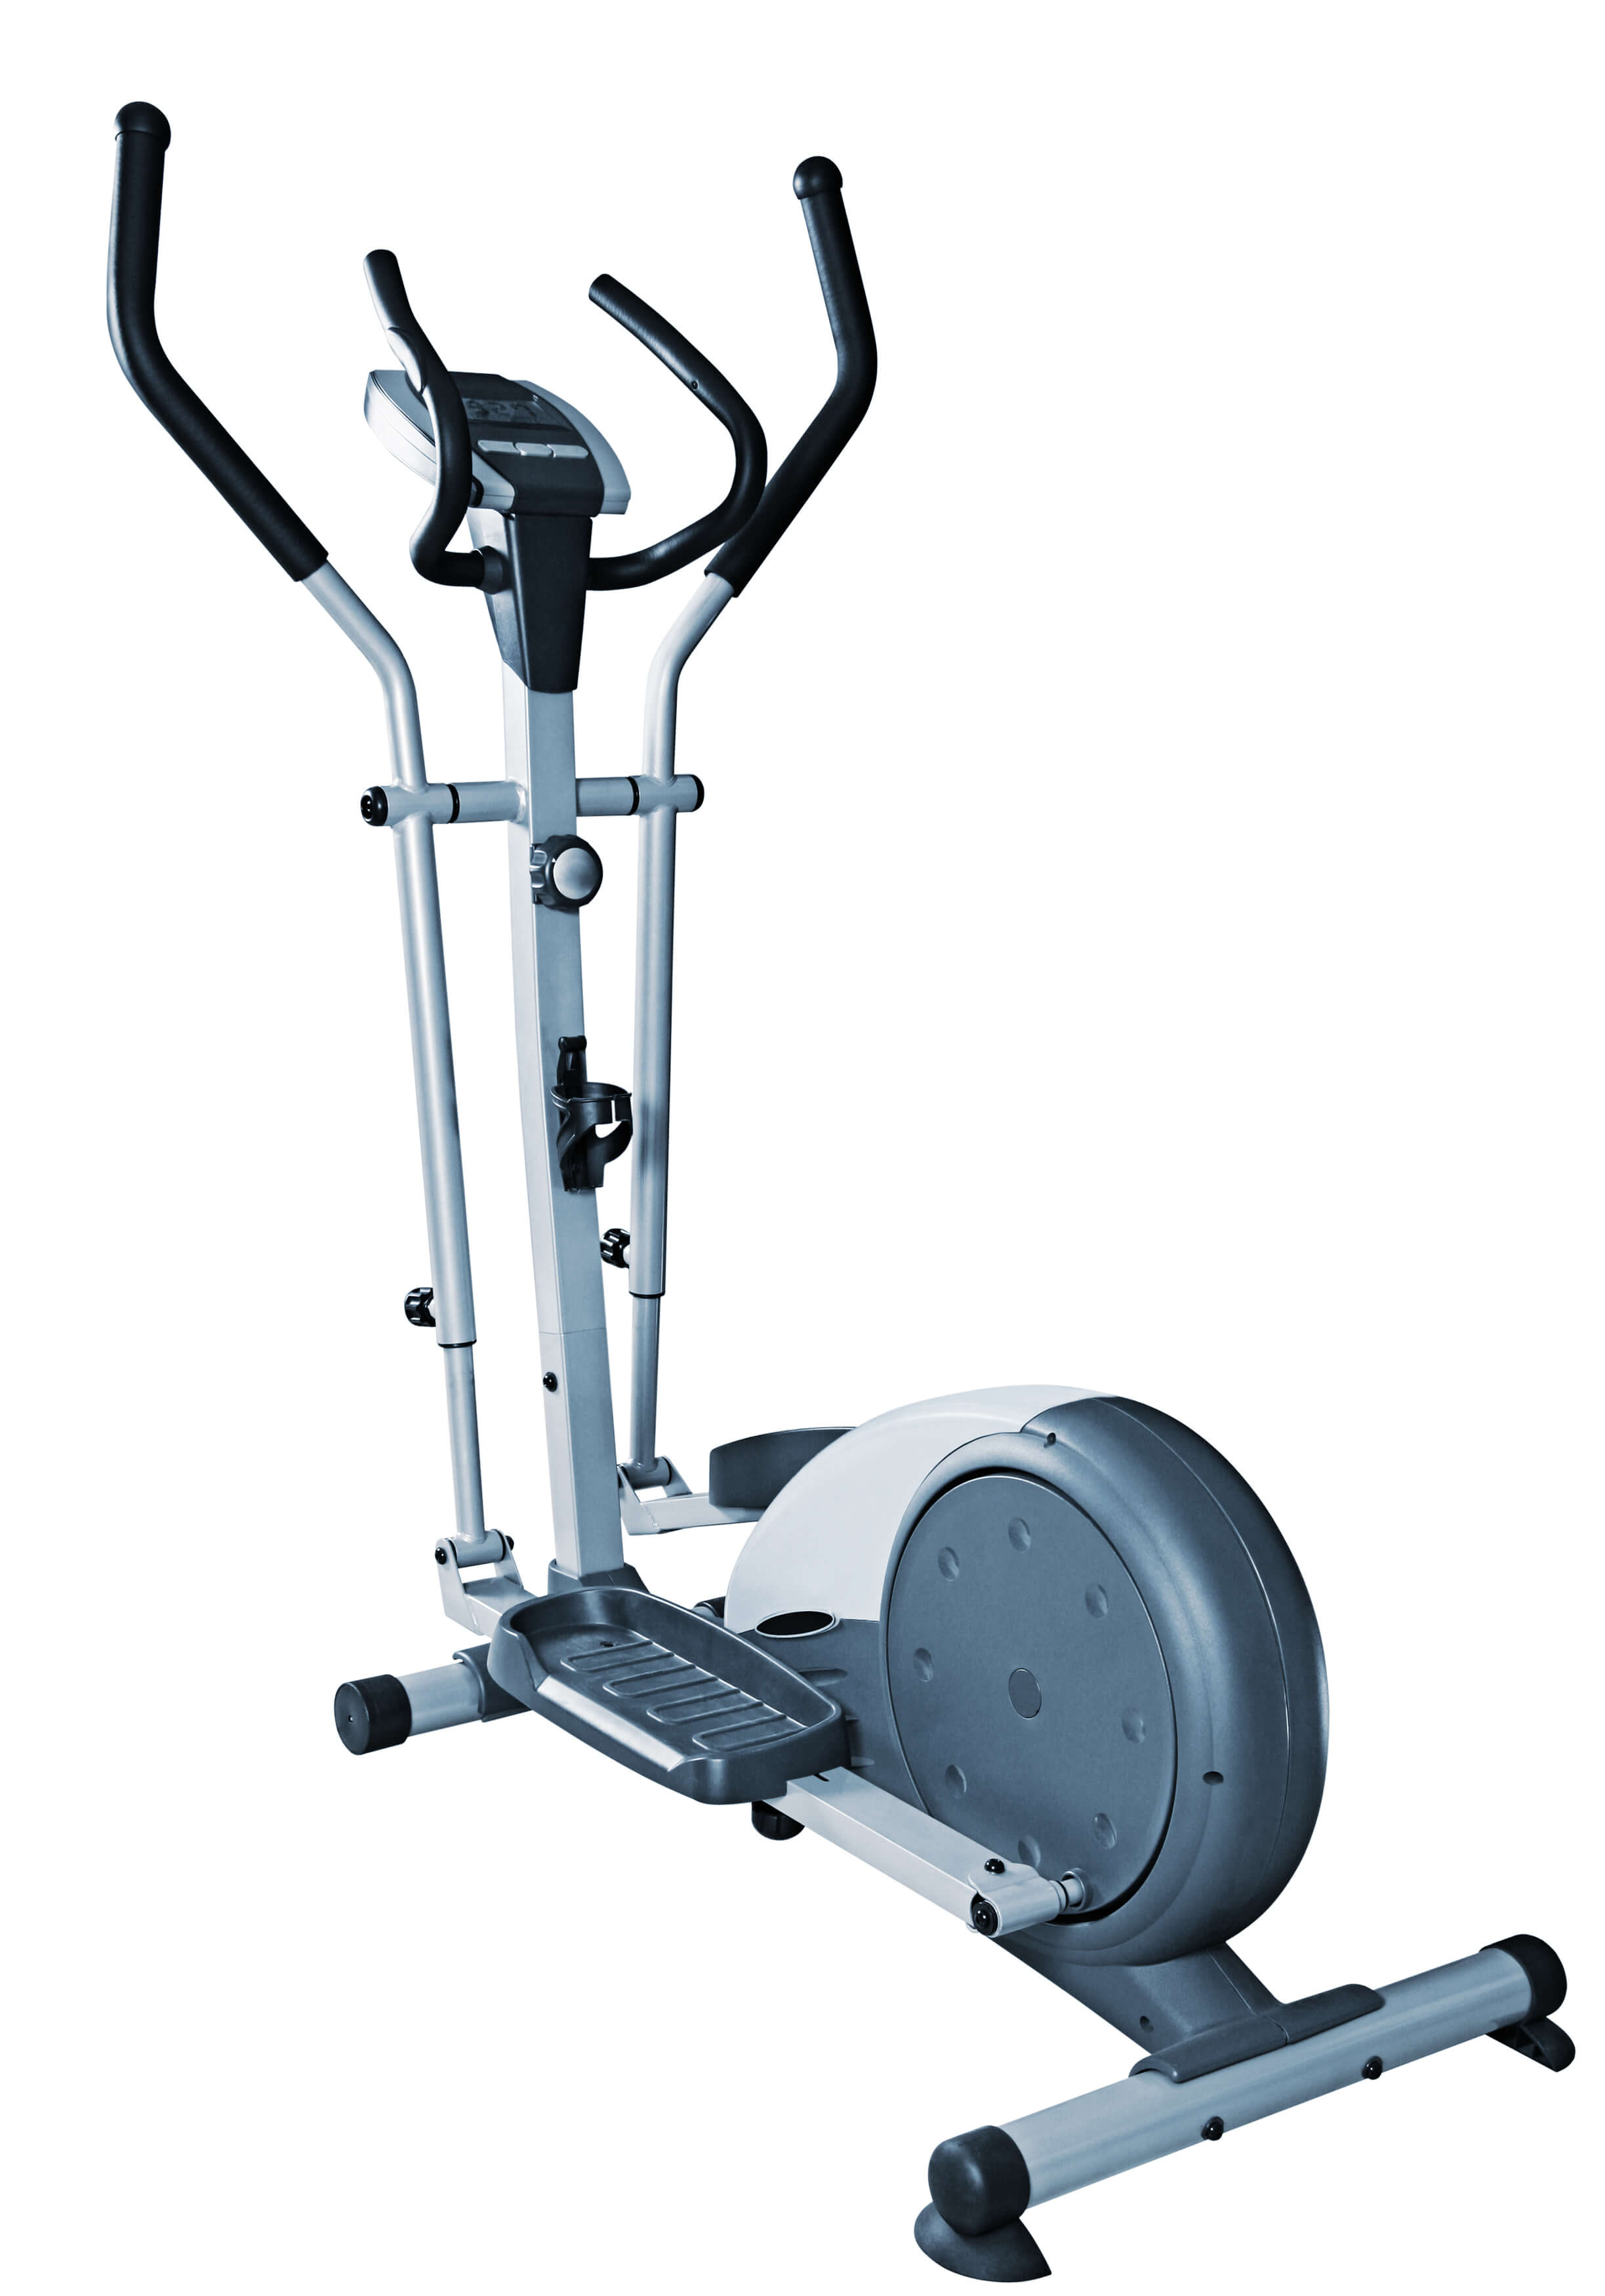 Is An Elliptical Trainer Good For Fat Loss